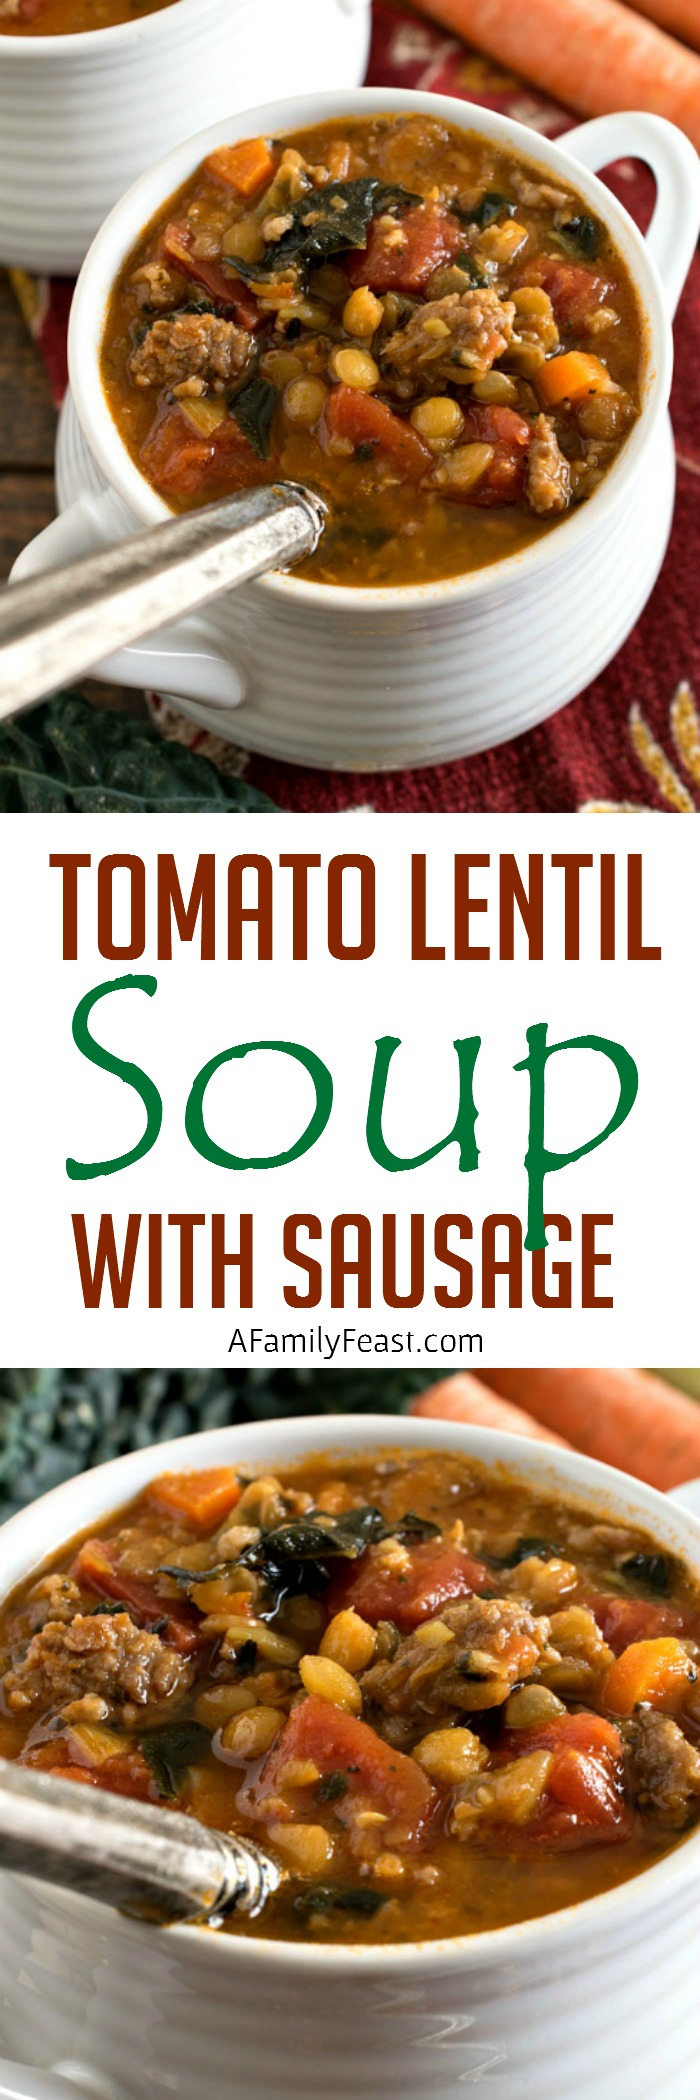 Tomato Lentil Soup with Sausage - Delicious comfort food in a bowl!